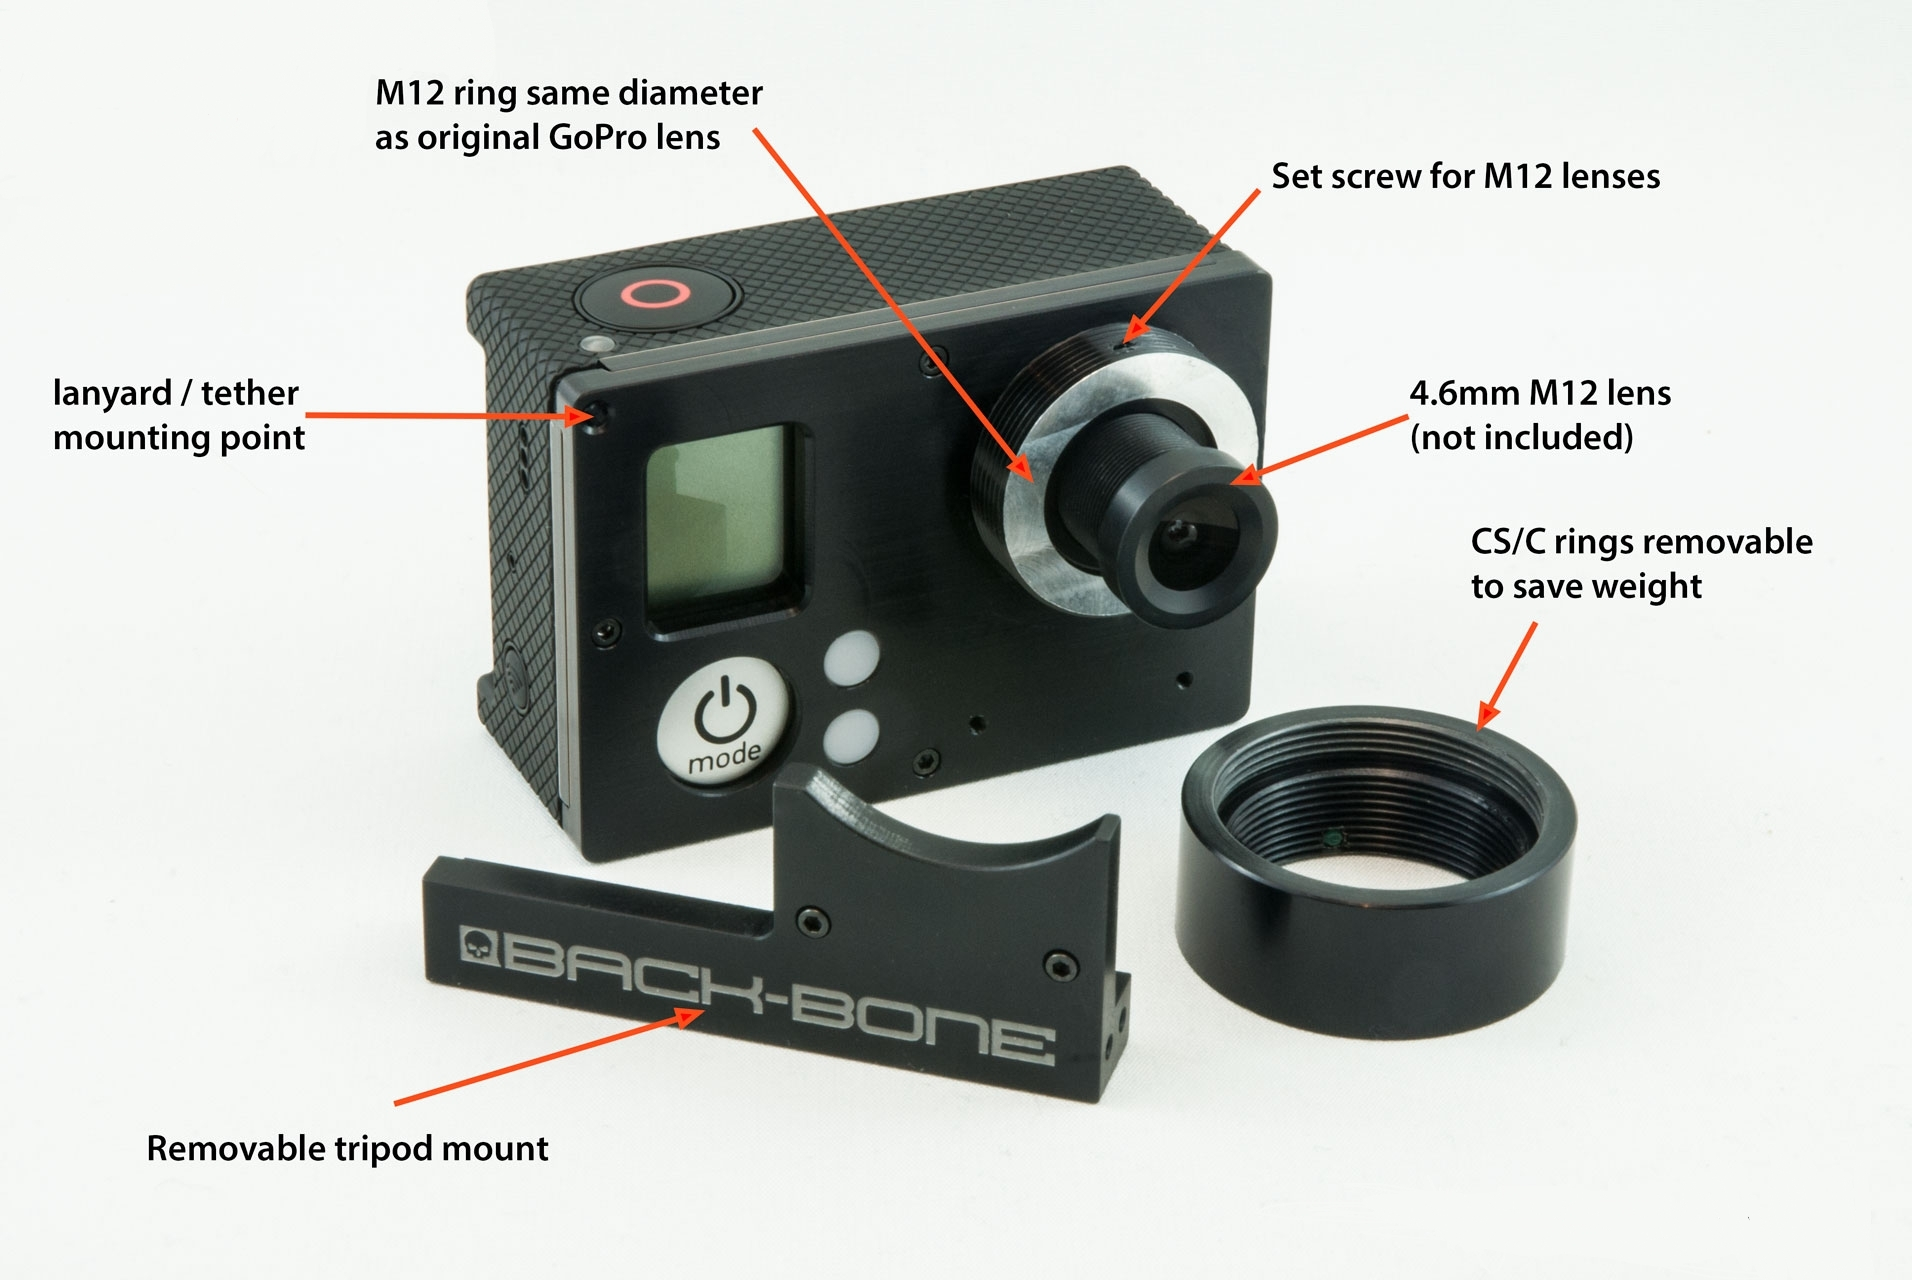 RibCage Back-Bone Lens Mount Mod Kit For Gopro Hero3 Hero3+ Plus